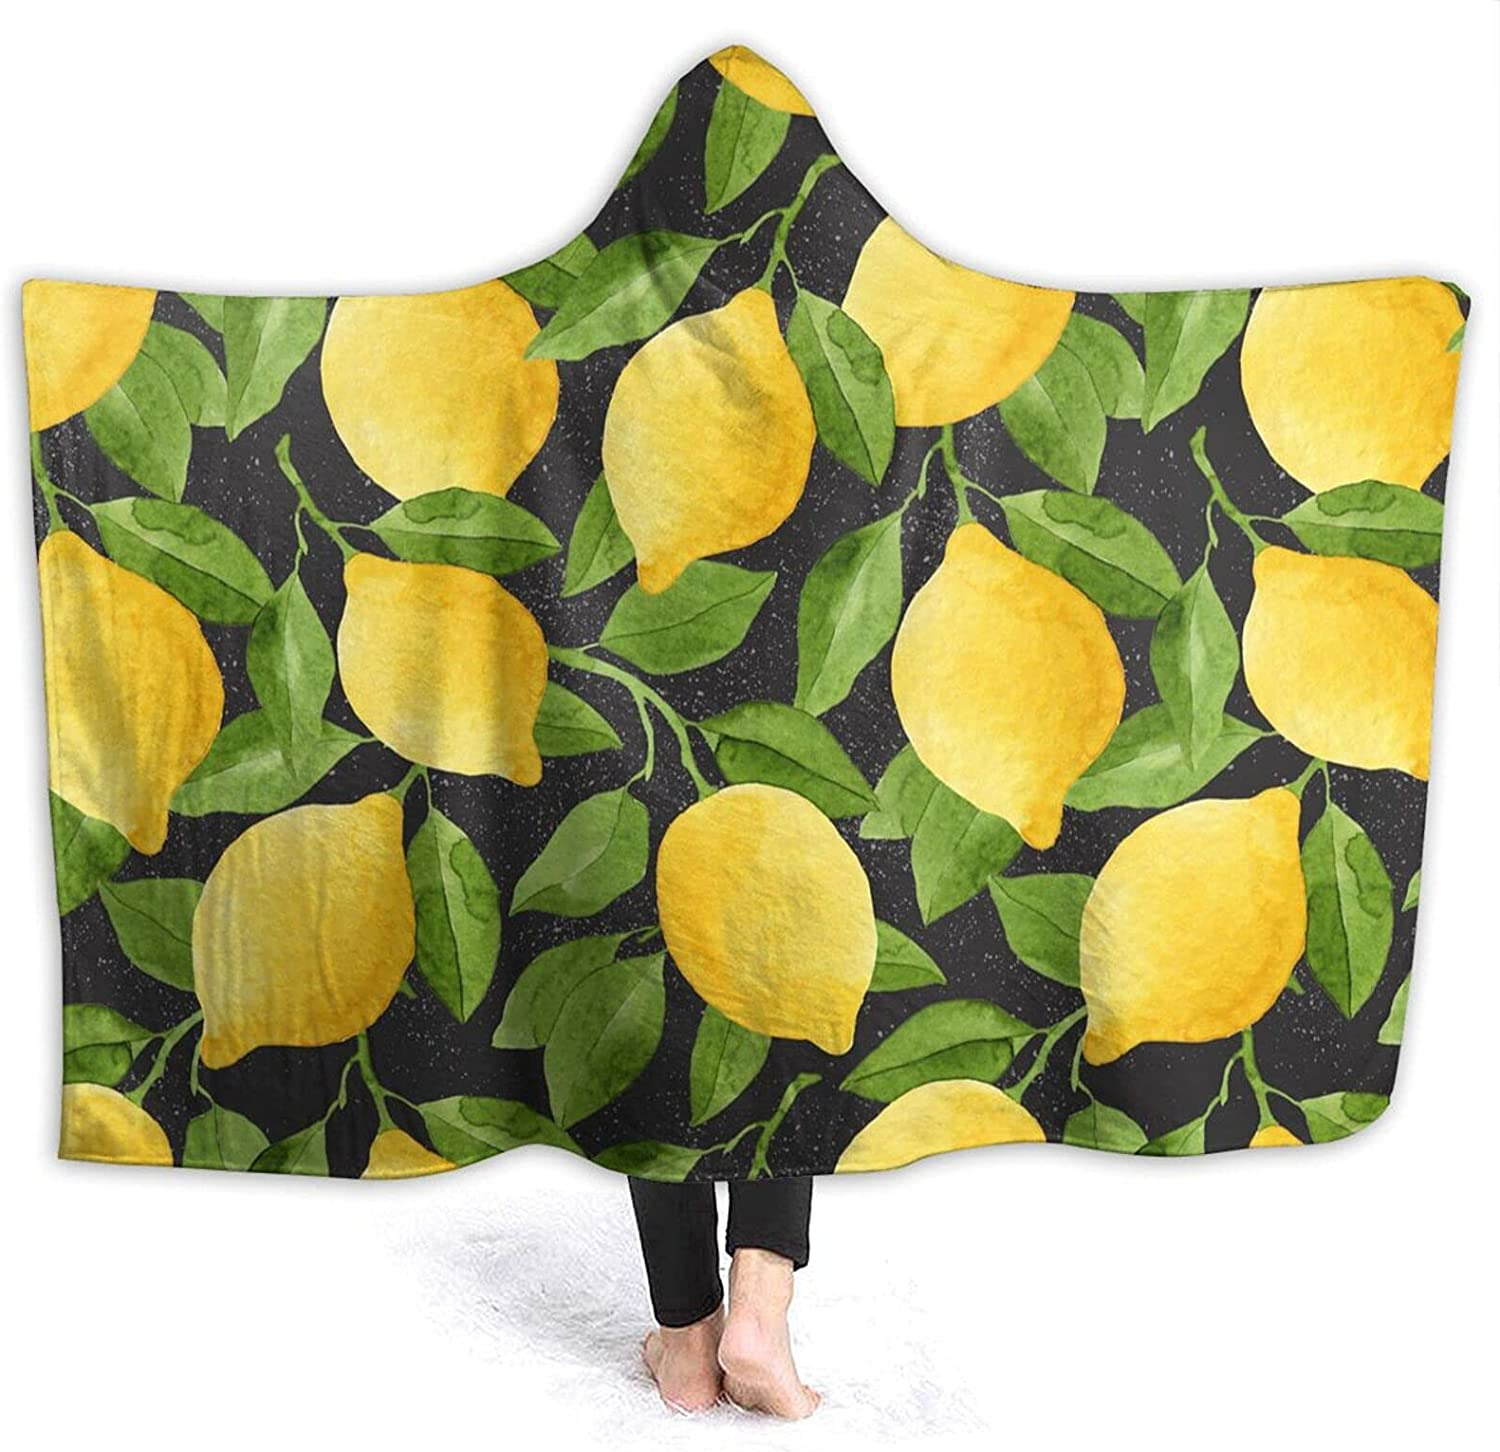 Branded goods Hooded Blanket Max 78% OFF Bright Yellow Watercolor Lemons Suitable for Sof